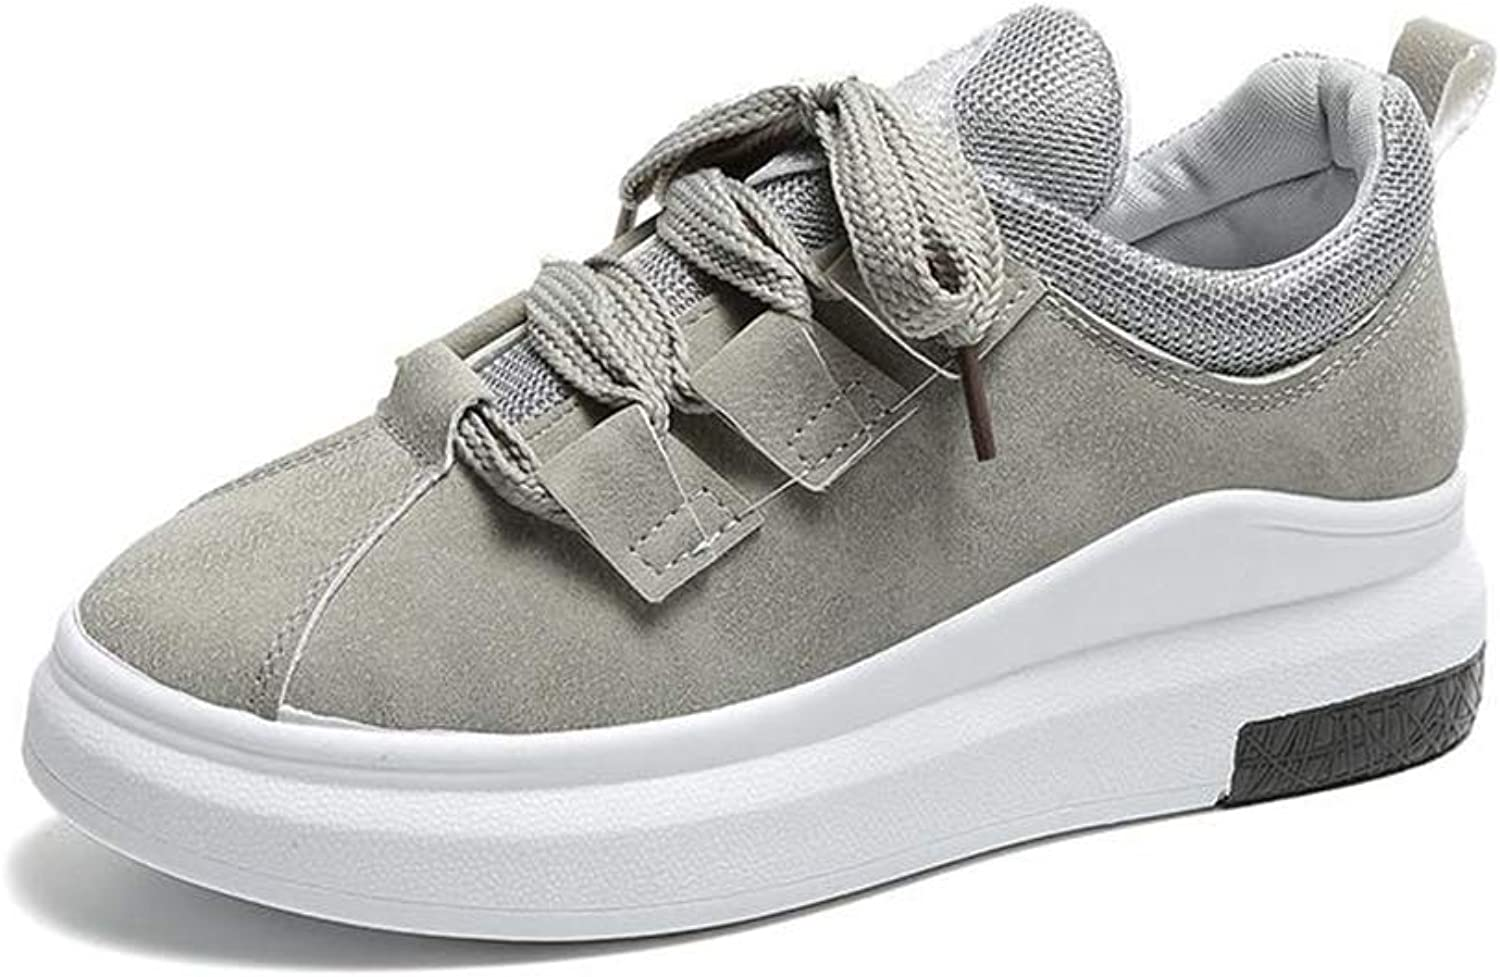 T-JULY Spring Wedges Platform Sneakers Women Casual Vulcanize shoes